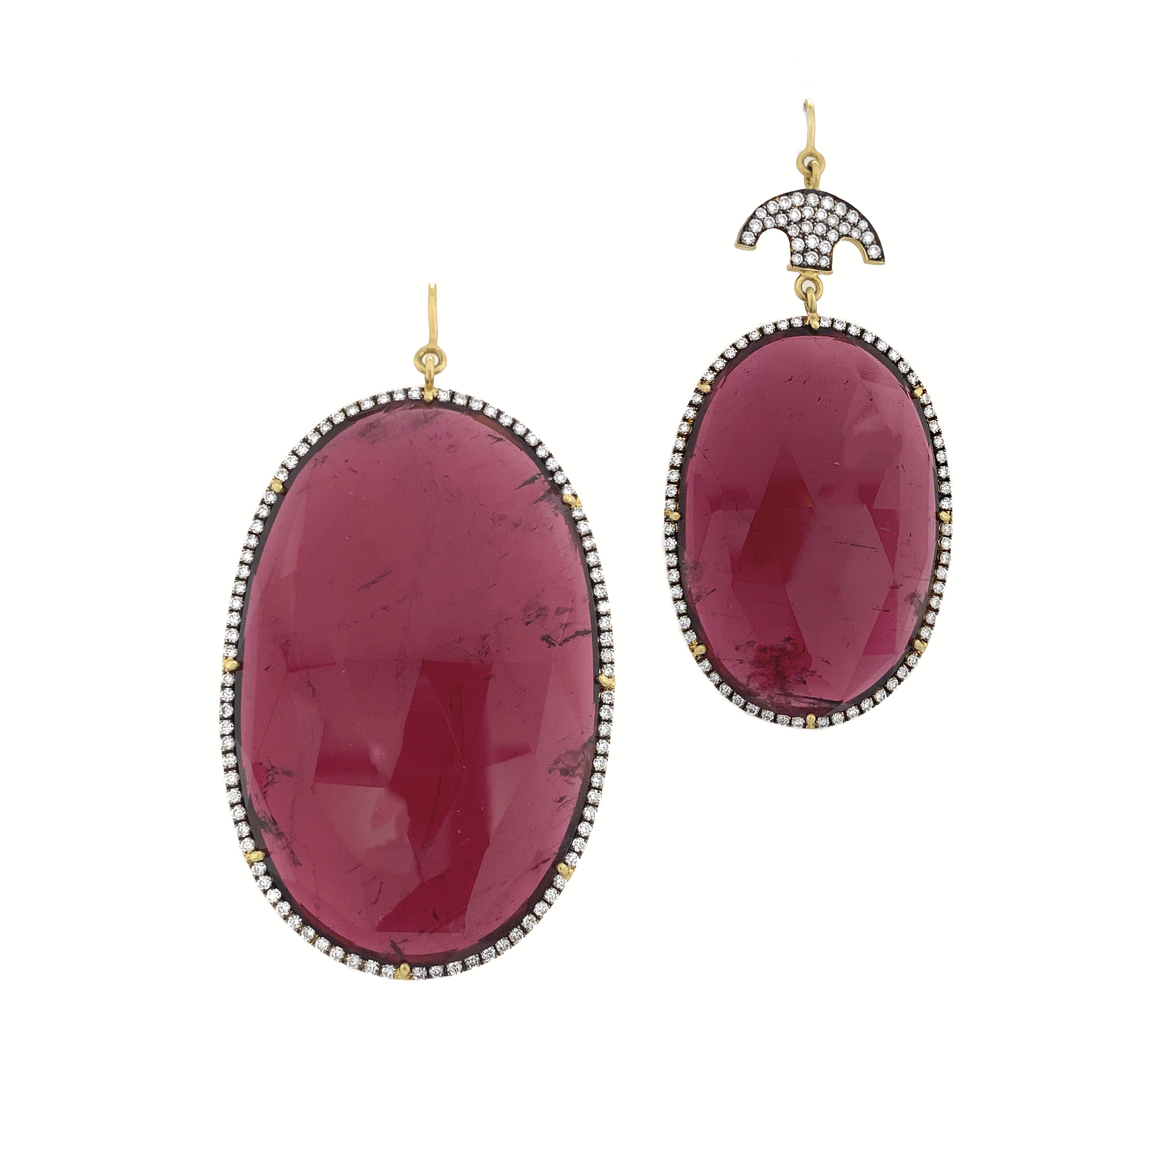 Tourmaline Earrings - Lesley Ann Jewels